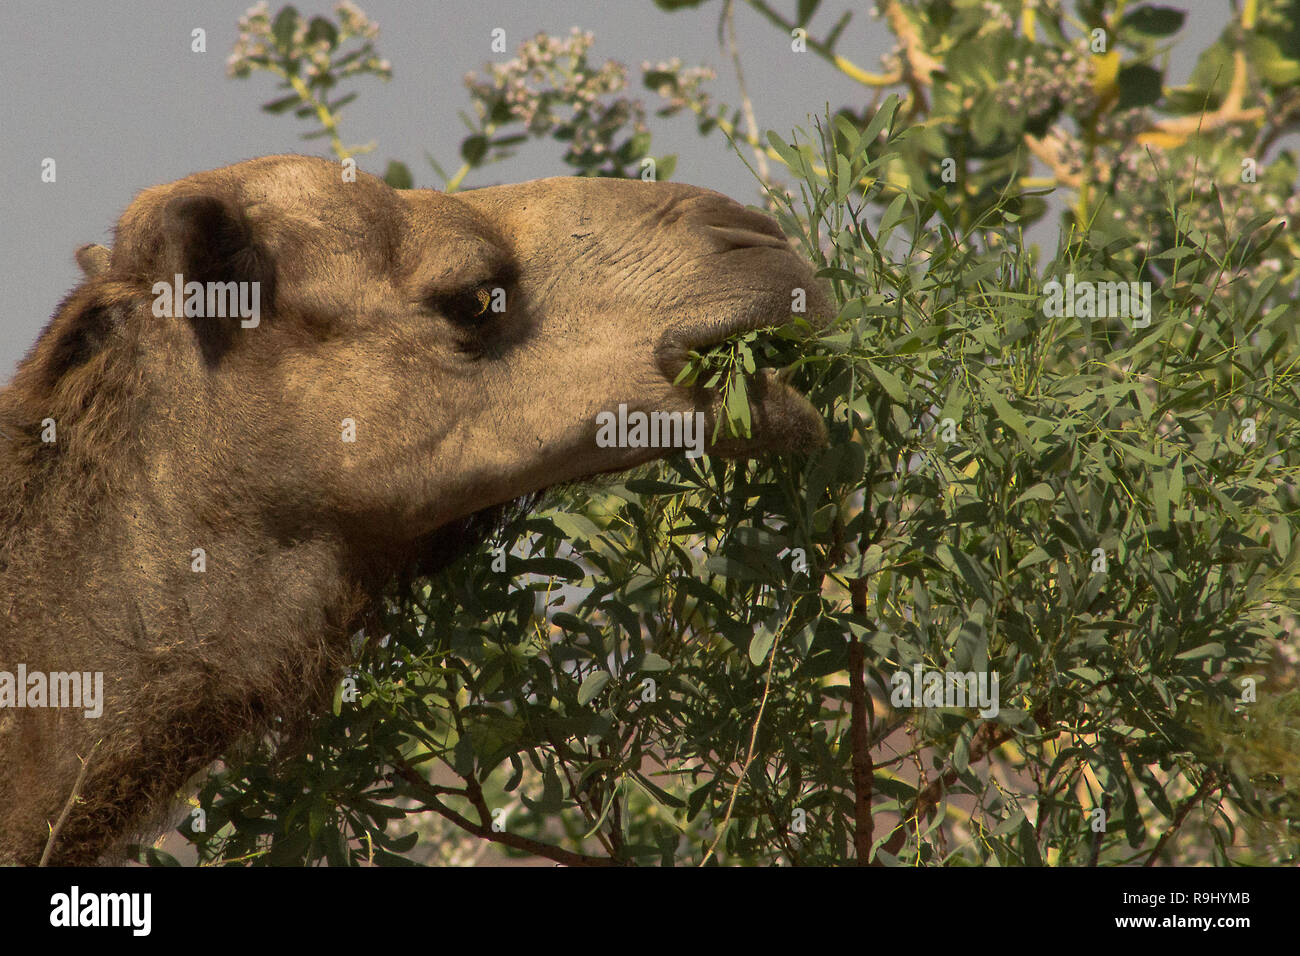 An Australian camel eyes the camera as it munches gum leaves - Stock Image